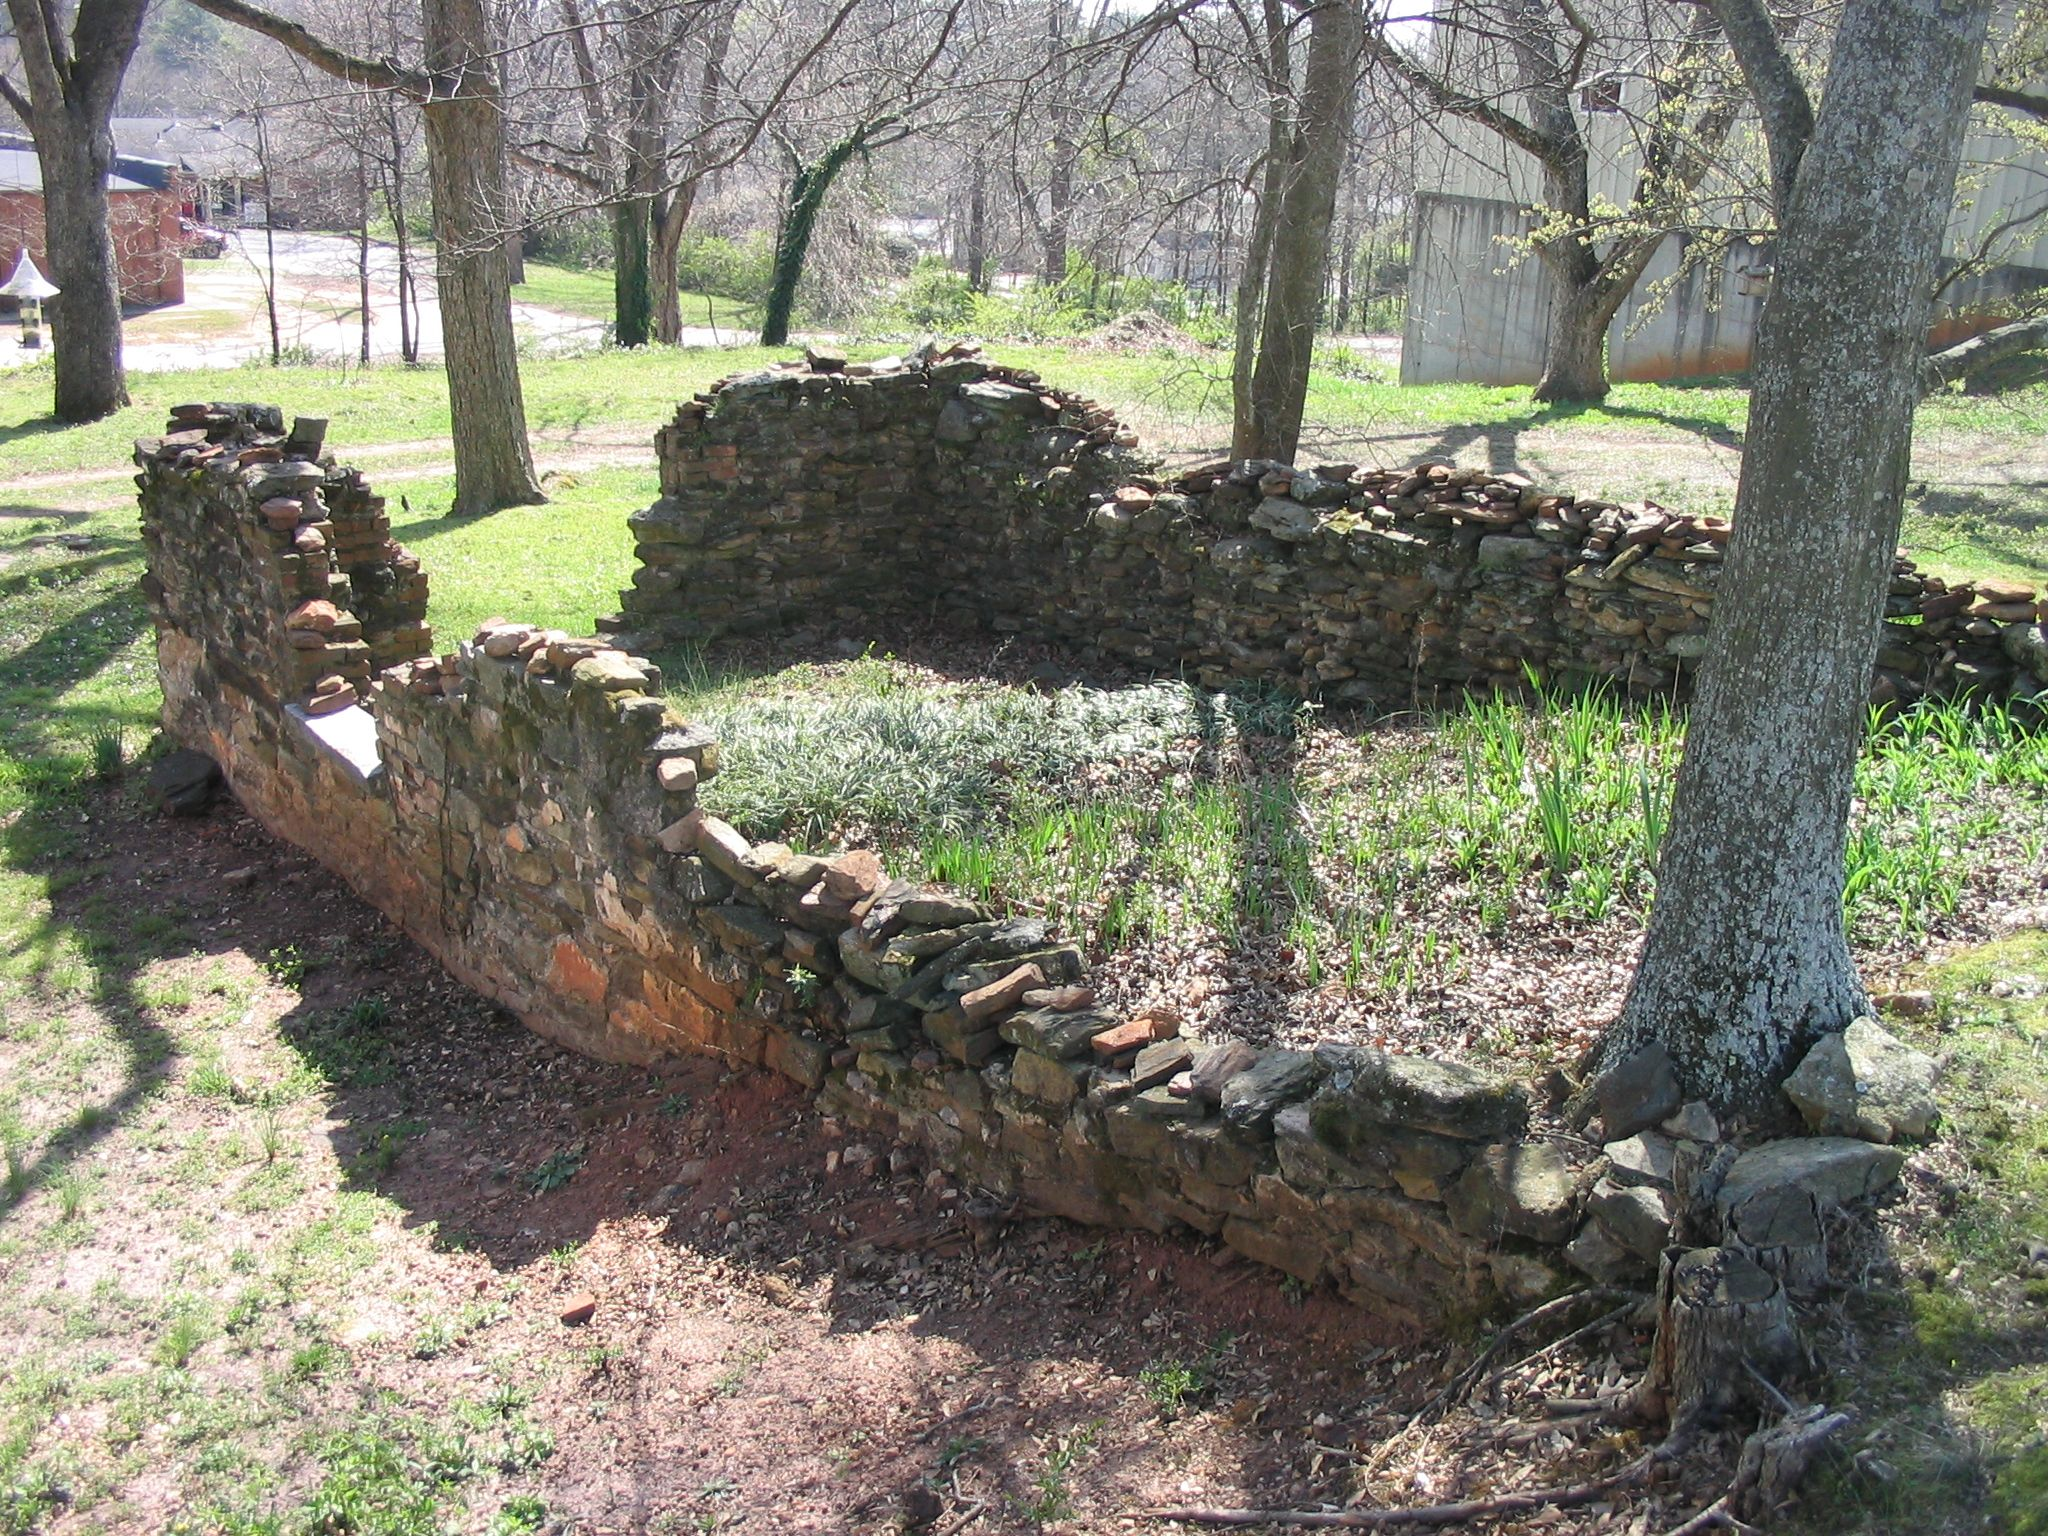 The foundations of a nameless old house on the backstreets of Lawrenceville